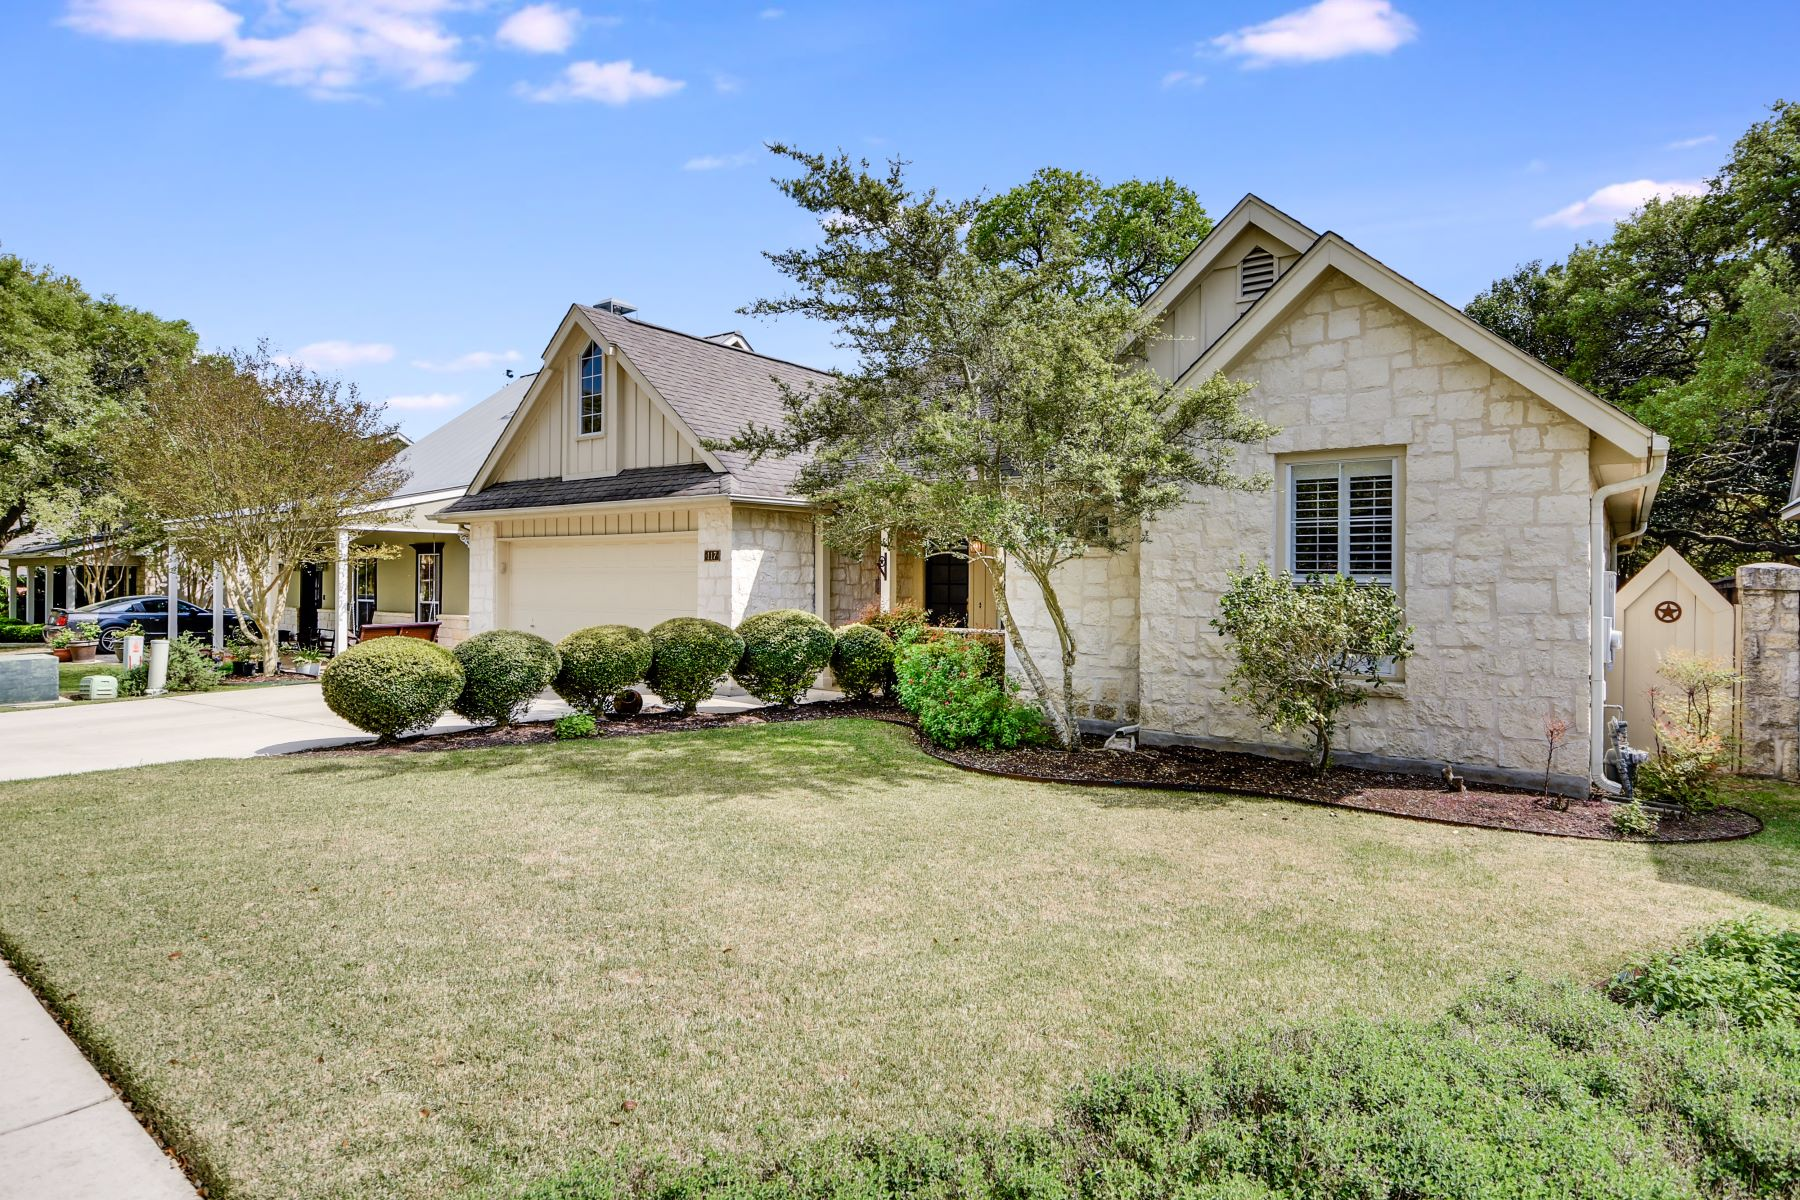 Single Family Home for Sale at 117 Village Cove, Boerne, TX 78006 117 Village Cove Boerne, Texas 78006 United States